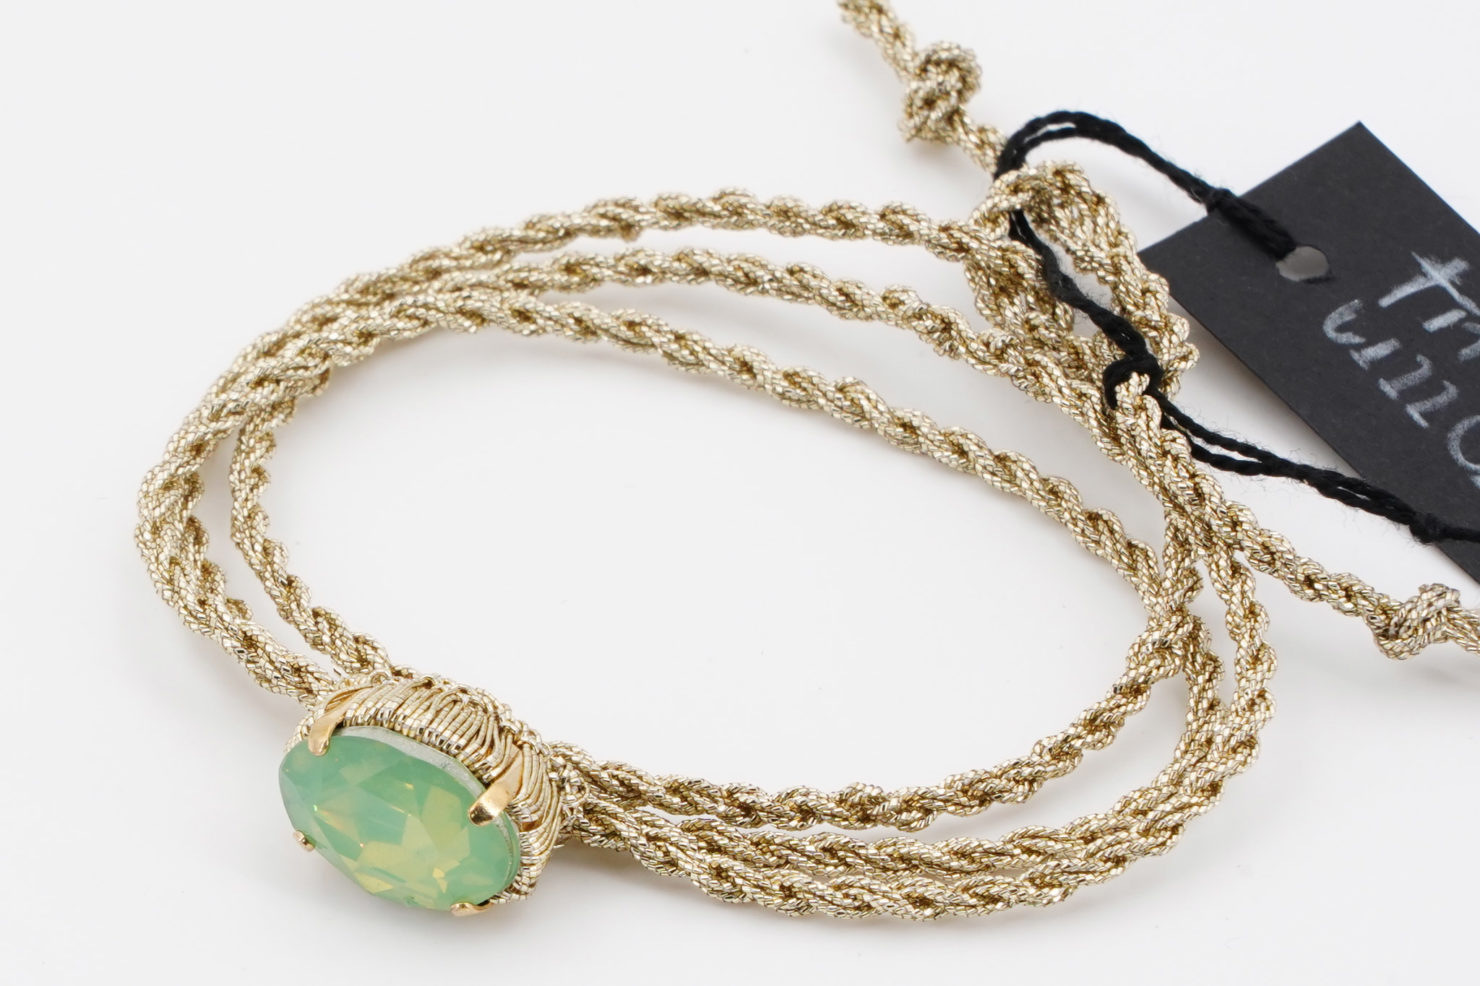 GOLD STRING + LIGHT BLUE CRISTAL BRACELET/CHOKER- TMD BIJOUX